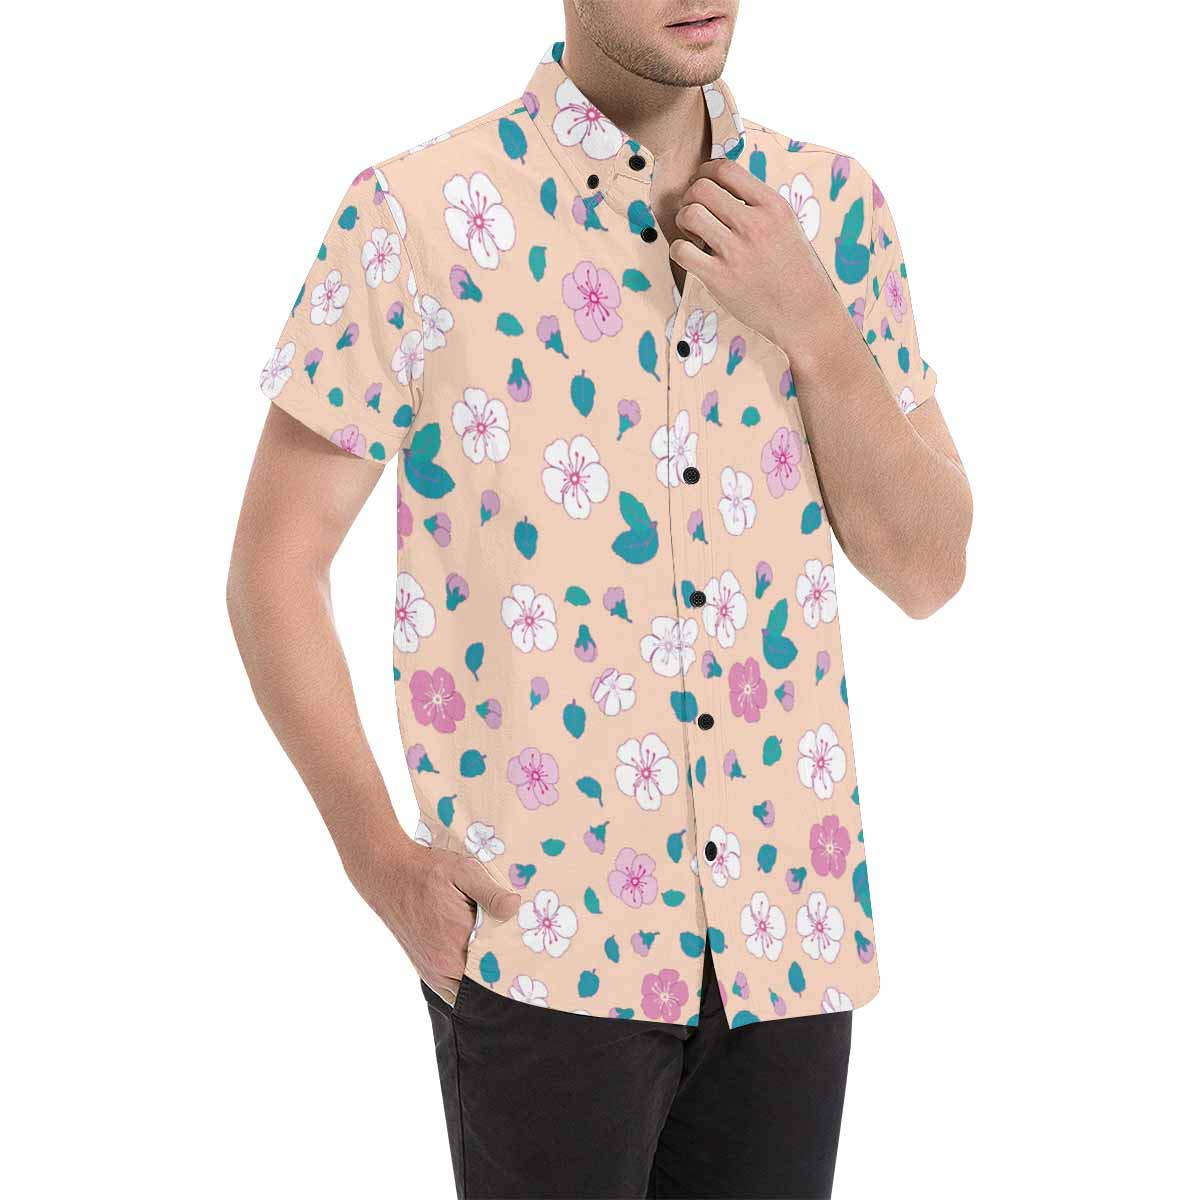 InterestPrint Ditsy Floral with Small Pink Flowers Printed Short Sleeve Button Down Shirt for Men